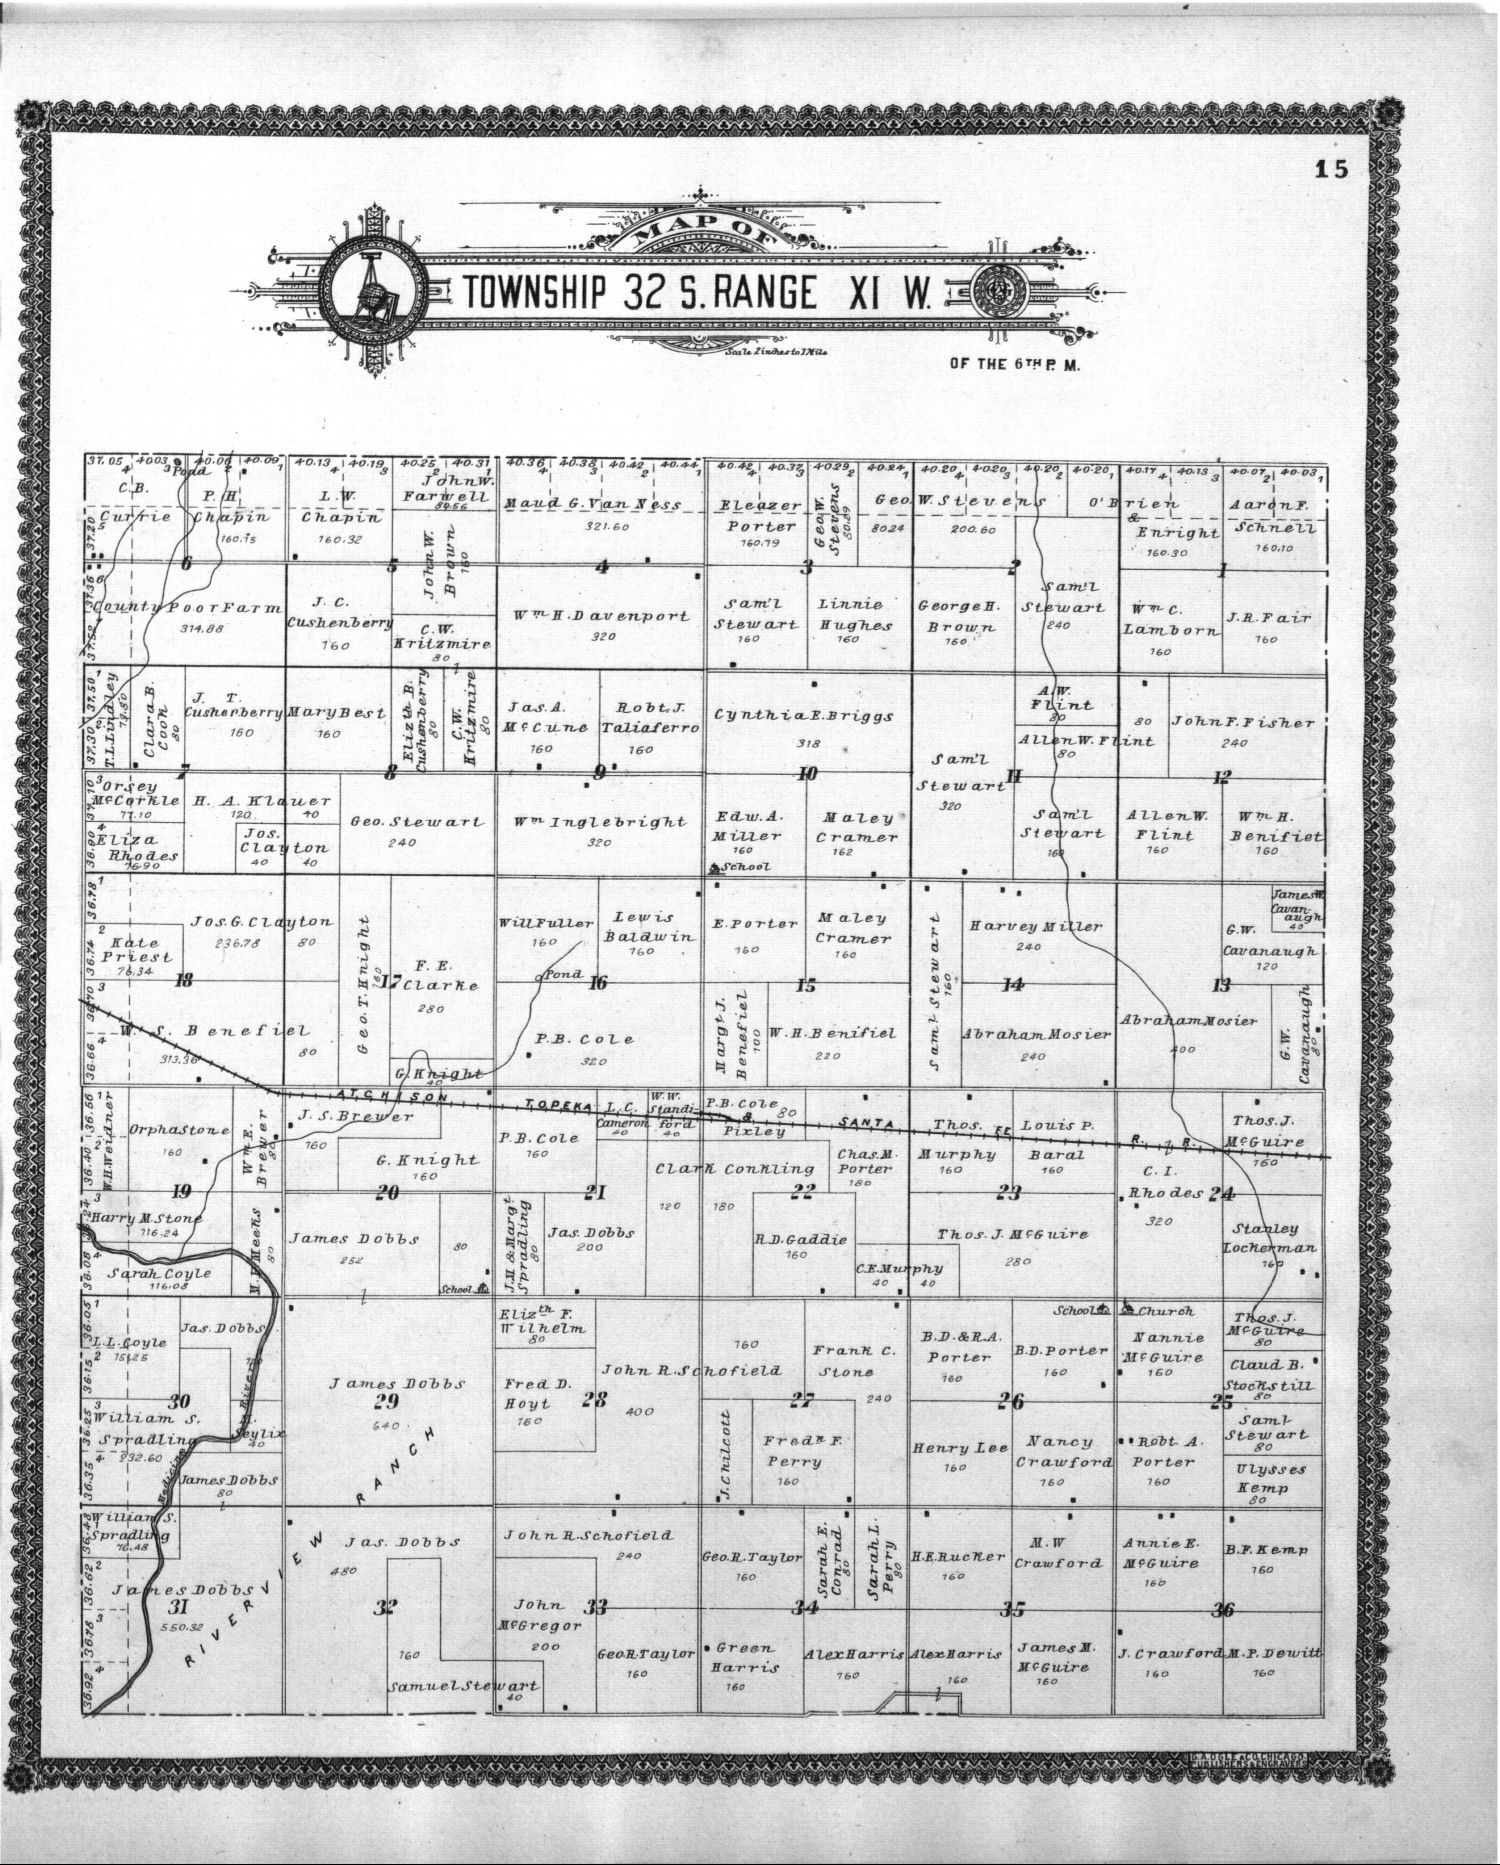 Standard atlas of Barber County, Kansas - 15